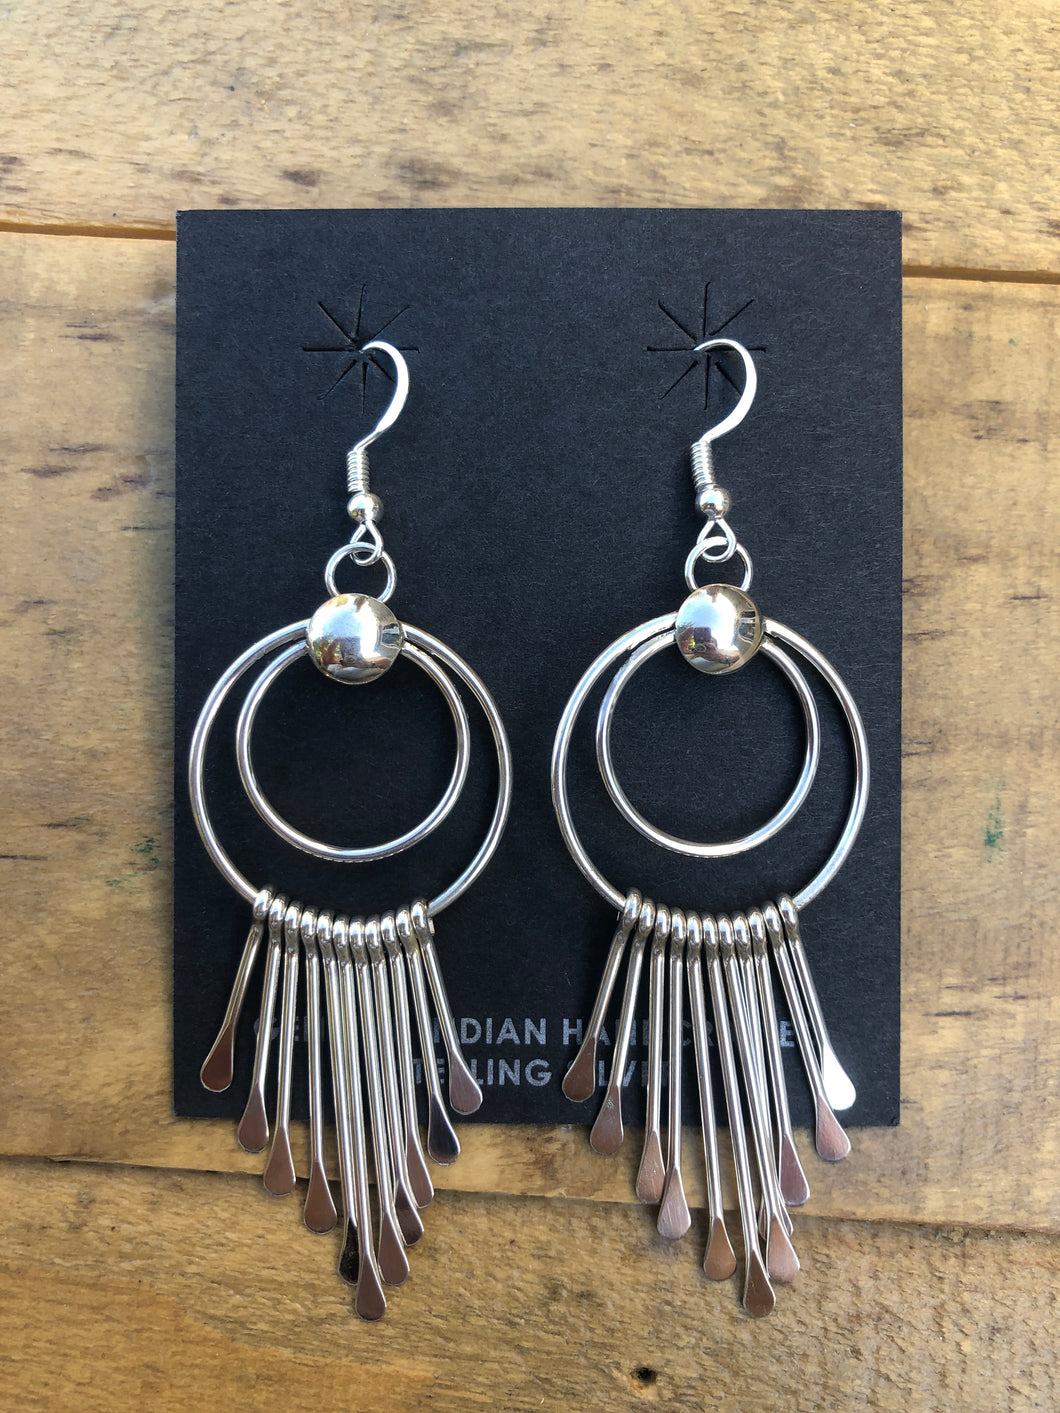 Handcrafted Sterling Silver Earrings - Large